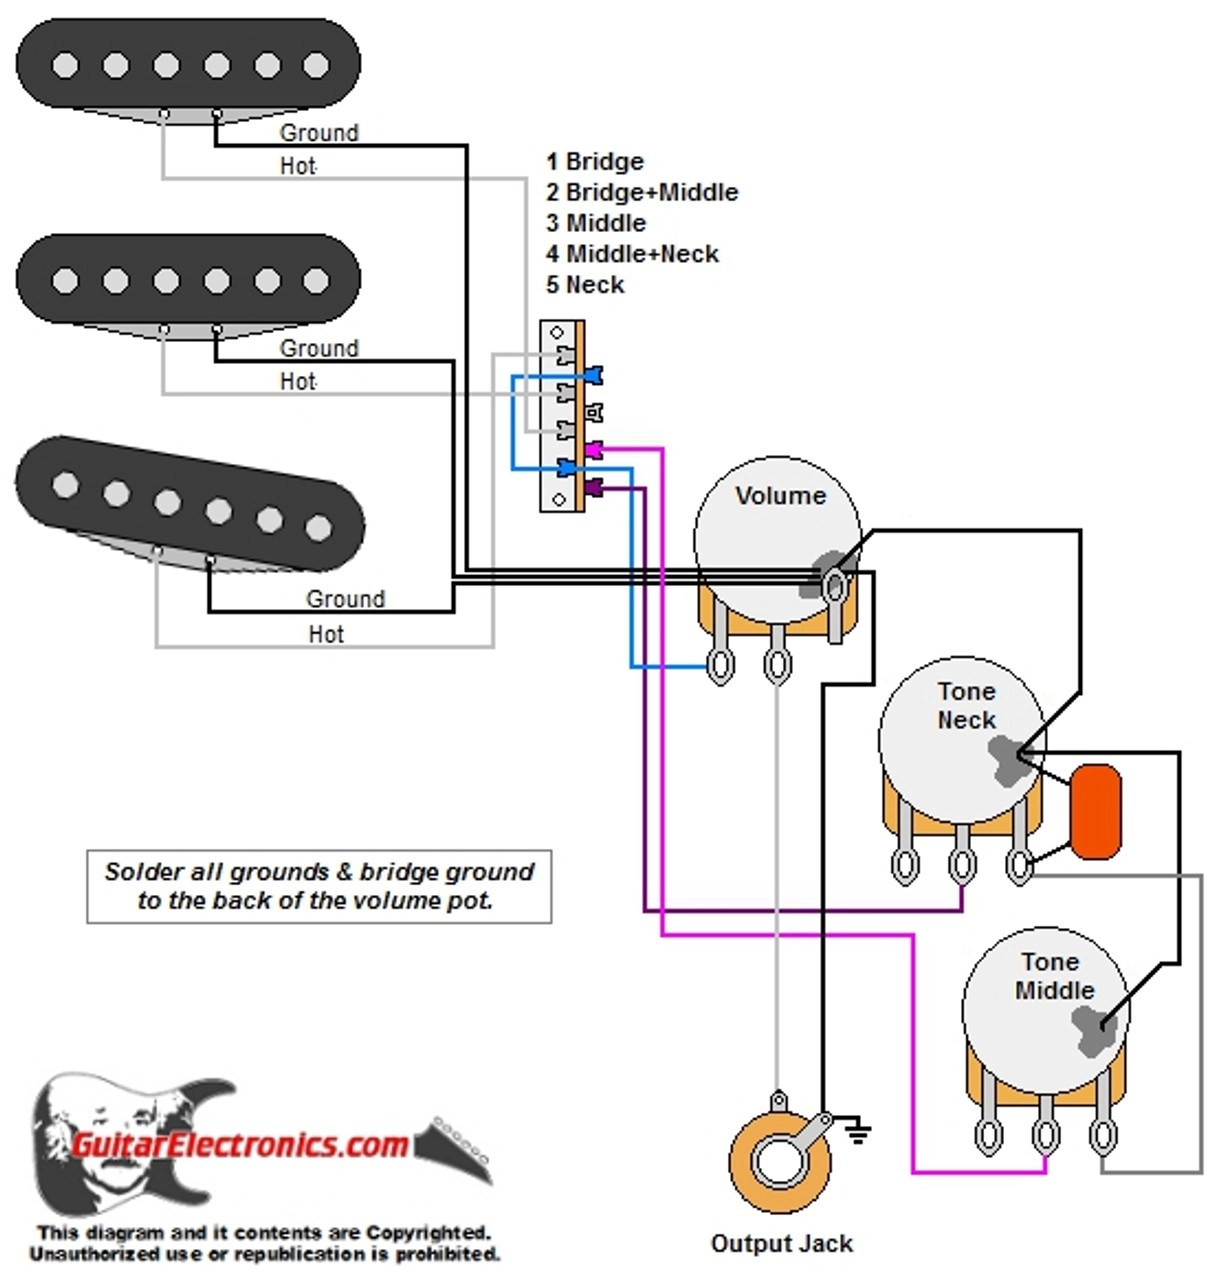 fender strat wiring diagram 5 way switch strat style guitar wiring diagramwdusss5l1201 80483 1481740458 jpg c u003d2 [ 1225 x 1280 Pixel ]